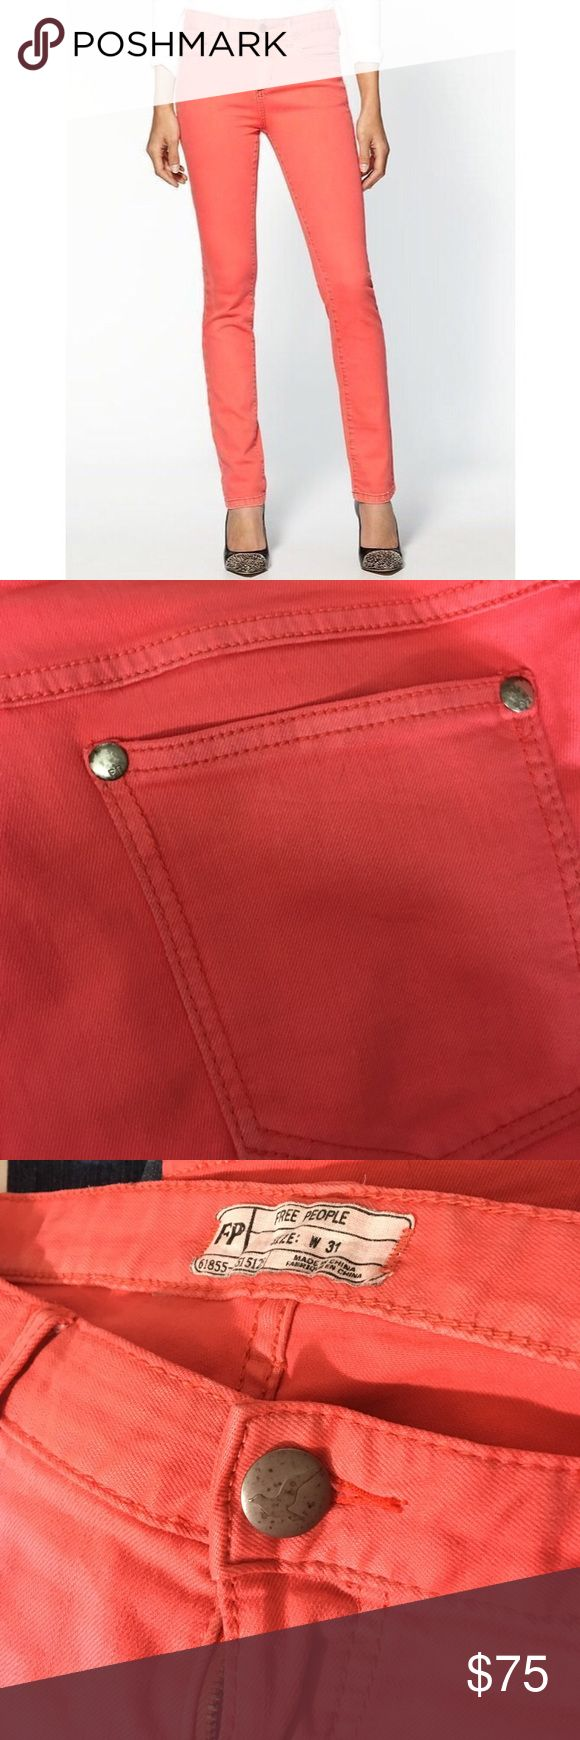 Free People High Rise Coral Skinny Jeans Great condition besides wear on grommets. Pretty coral color. 👗Fab Ab's Closet; Re-Styled Resale 👗 🎀15% OFF 3+ ITEM BUNDLES🎀 👉🏻PLEASE USE OFFER BUTTON👈🏻 ❌NO PP, TRADES, HOLDS❌  🛍ITEMS ALWAYS 100% AUTHENTIC🛍 👑POSH AMBASSADOR 👑 Free People Jeans Skinny